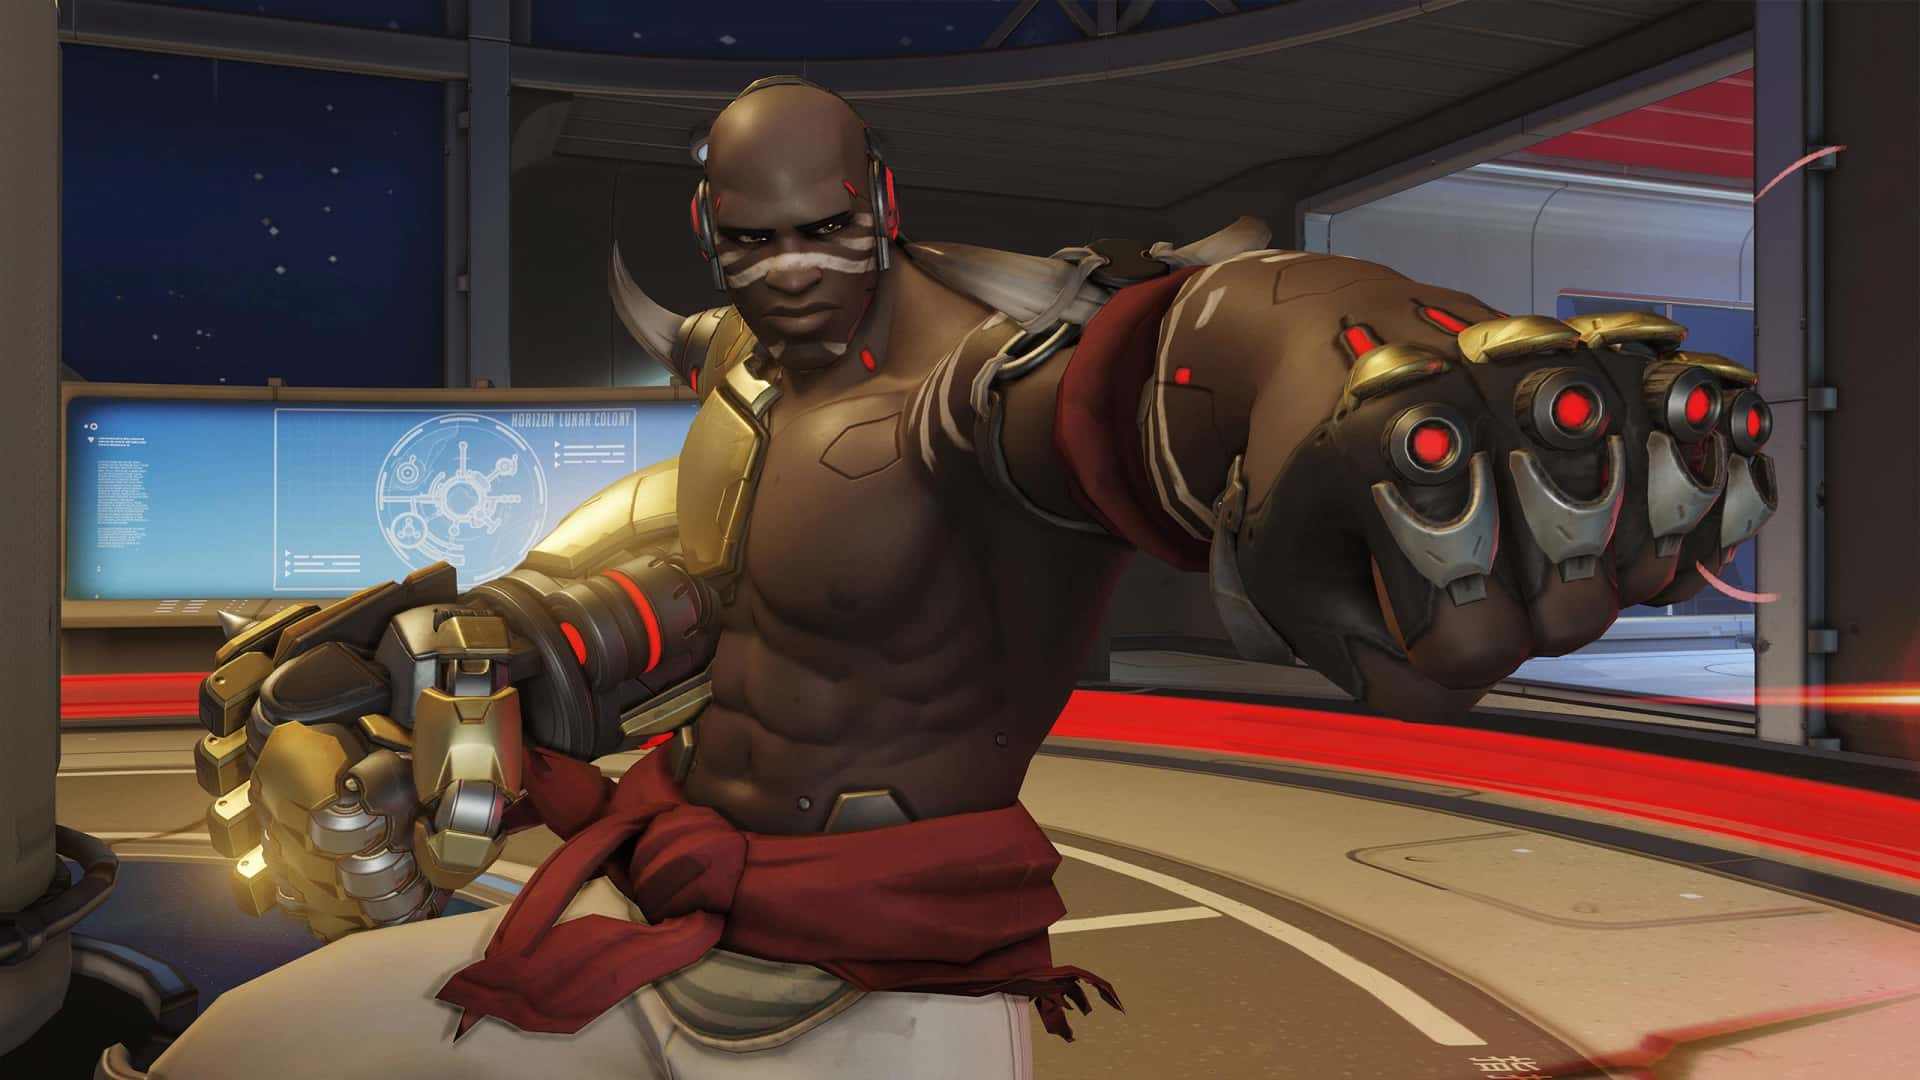 Doomfist's Ultimate is called the Meteor Strike, which sees him shoot up into the sky before slamming back down on his opponents.